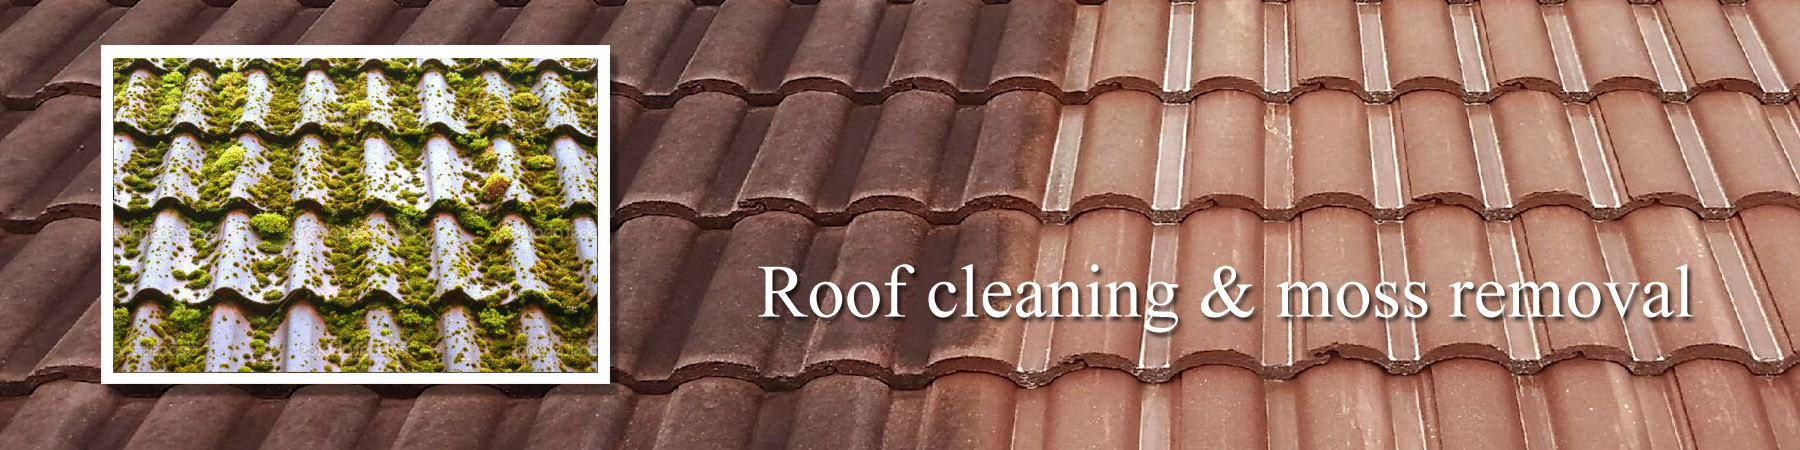 Roof cleaning J R Cleaning